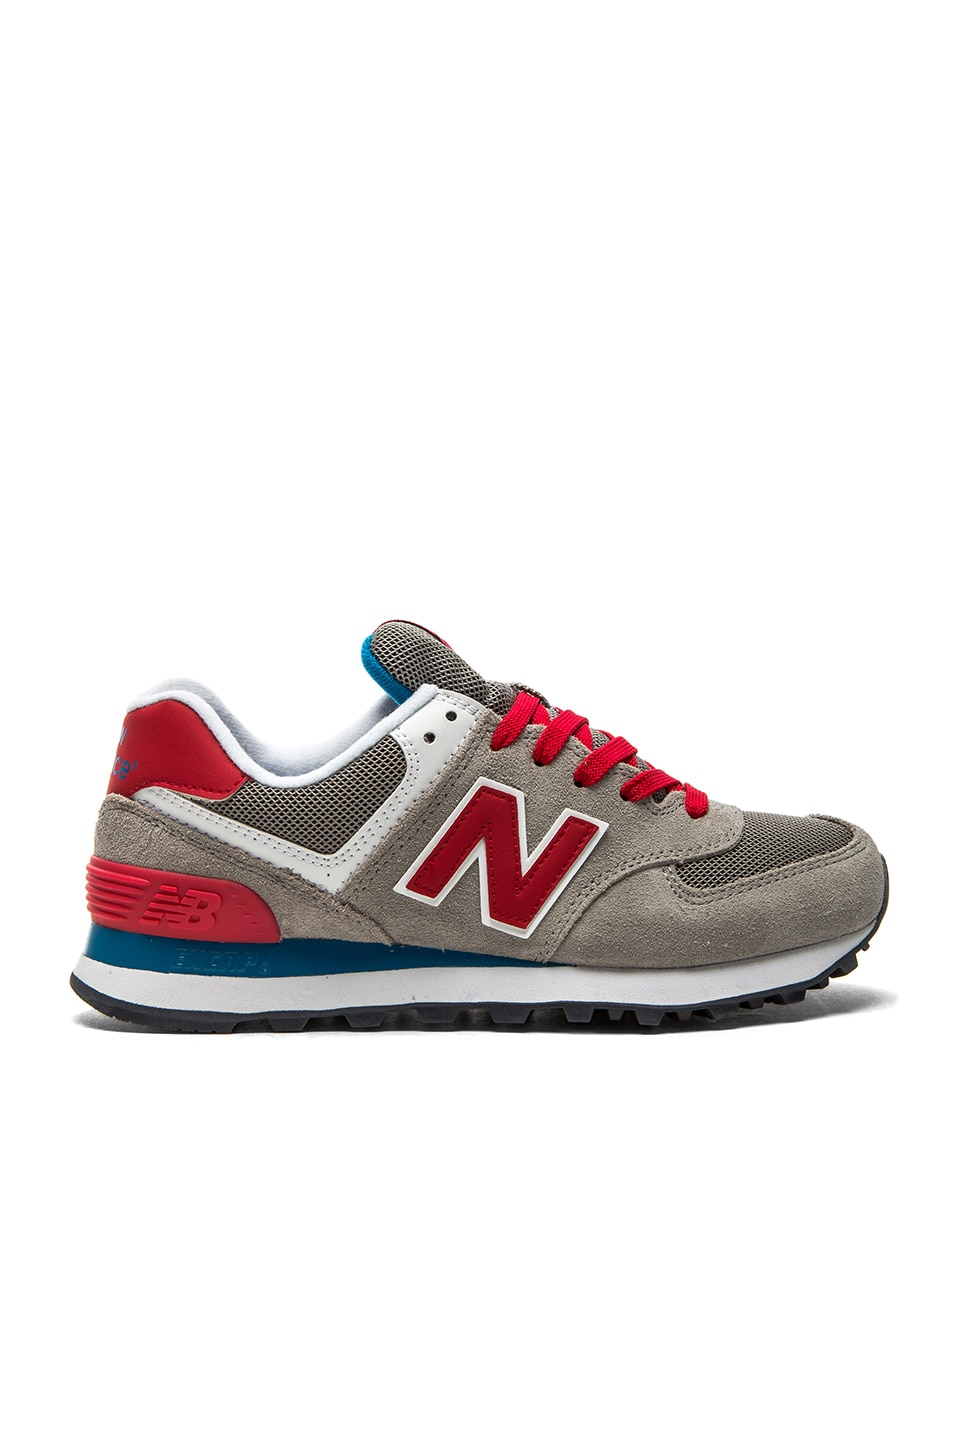 New Balance 574 Core Plus Collection Sneaker in Grey & Red